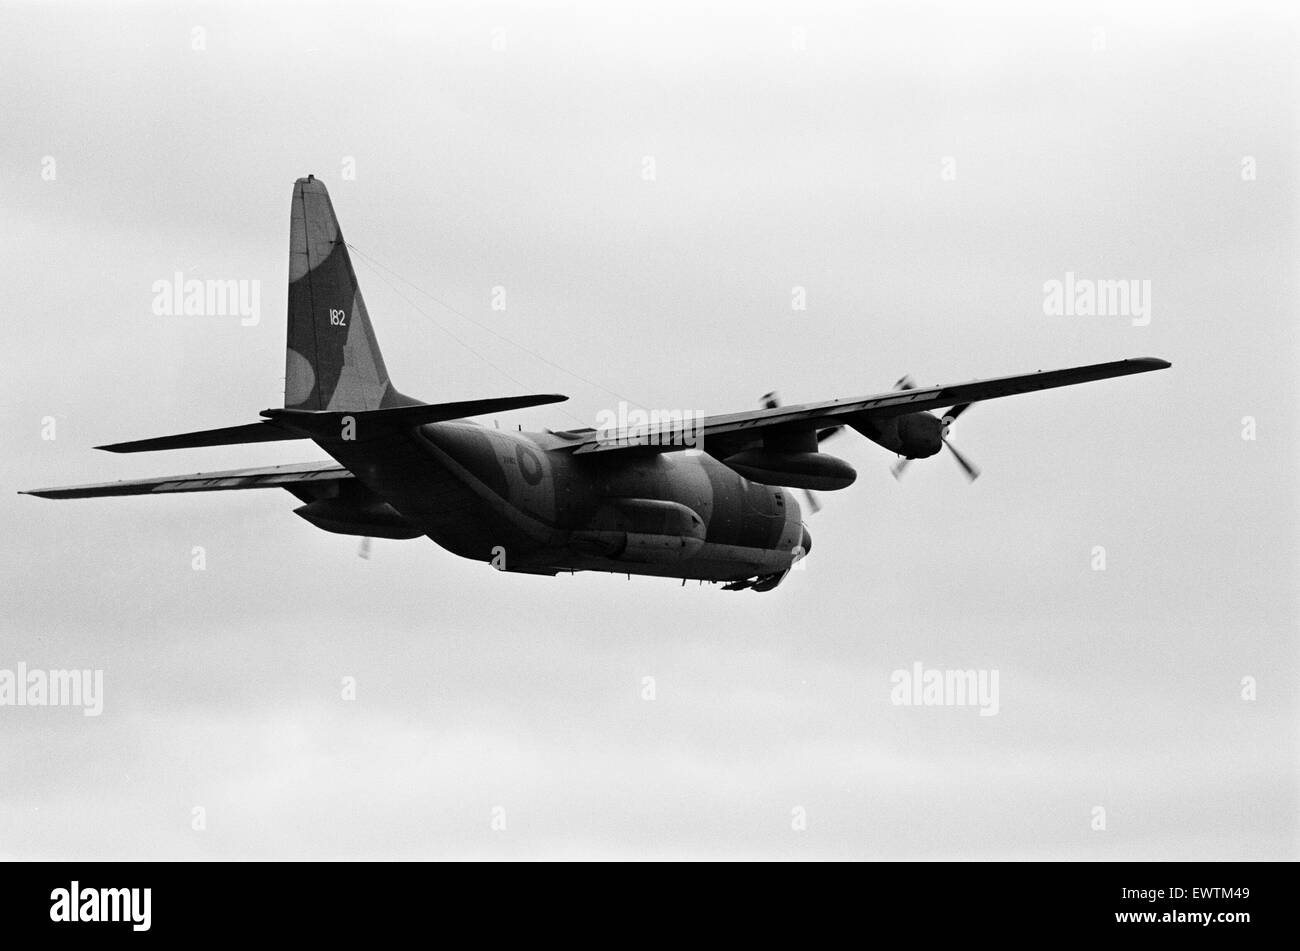 A Hercules of RAF Transport Command seen here at the Tees Valley Airshow, Durham Tees Valley Airport, Darlington, - Stock Image